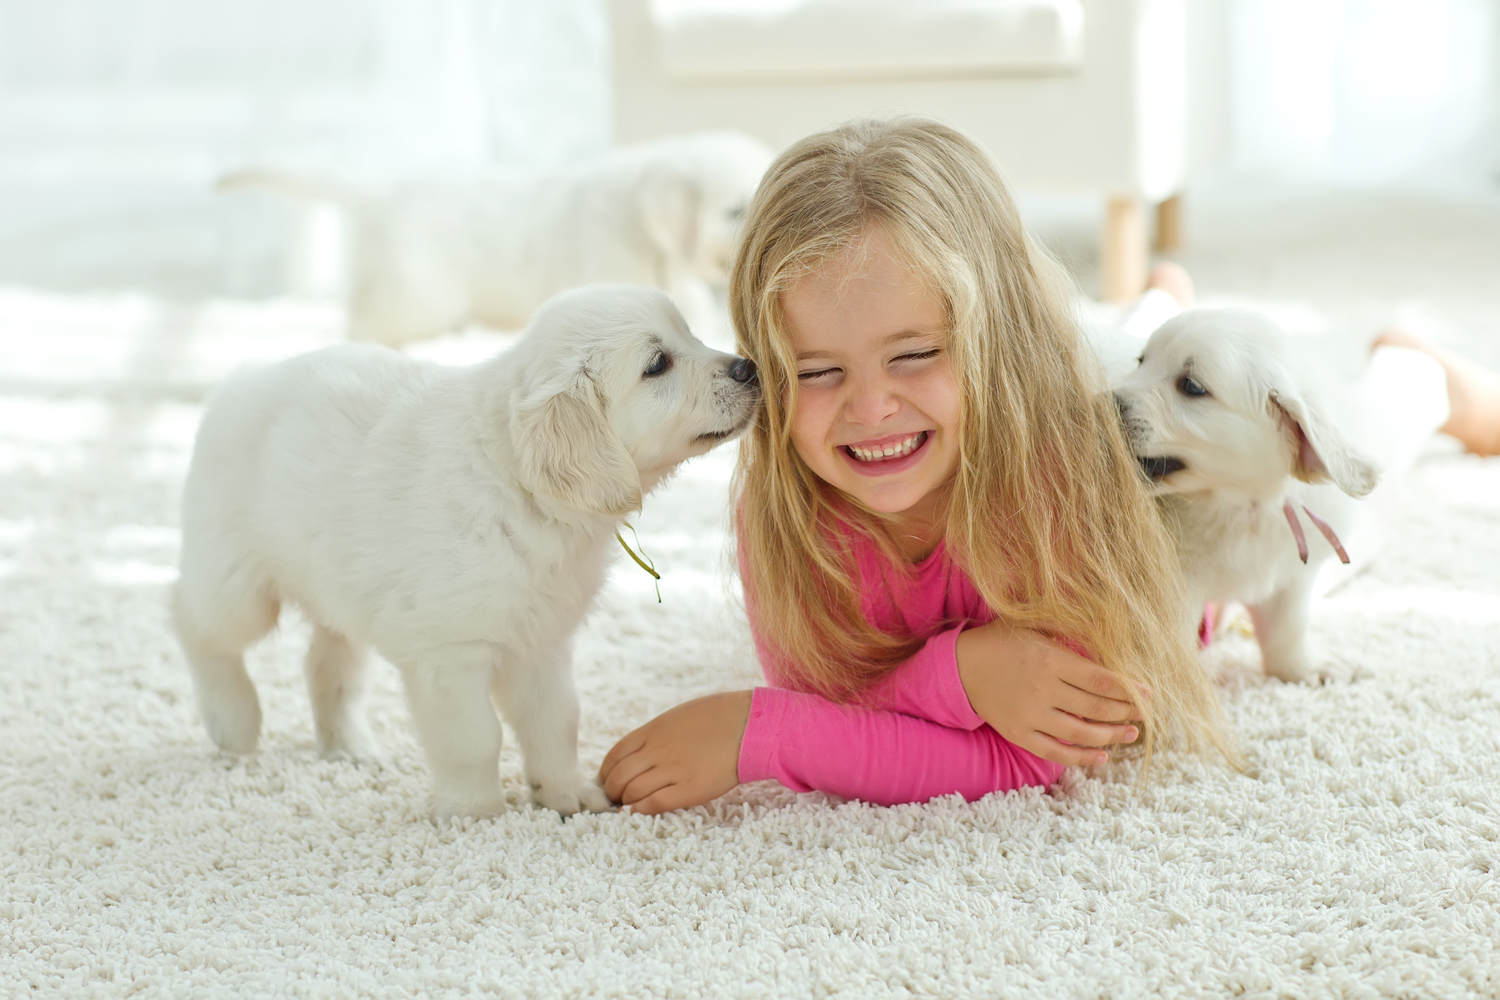 One Minute Dry Time carpet cleaning is safe for families and pets. We also provide upholstery and oriental rug cleaning